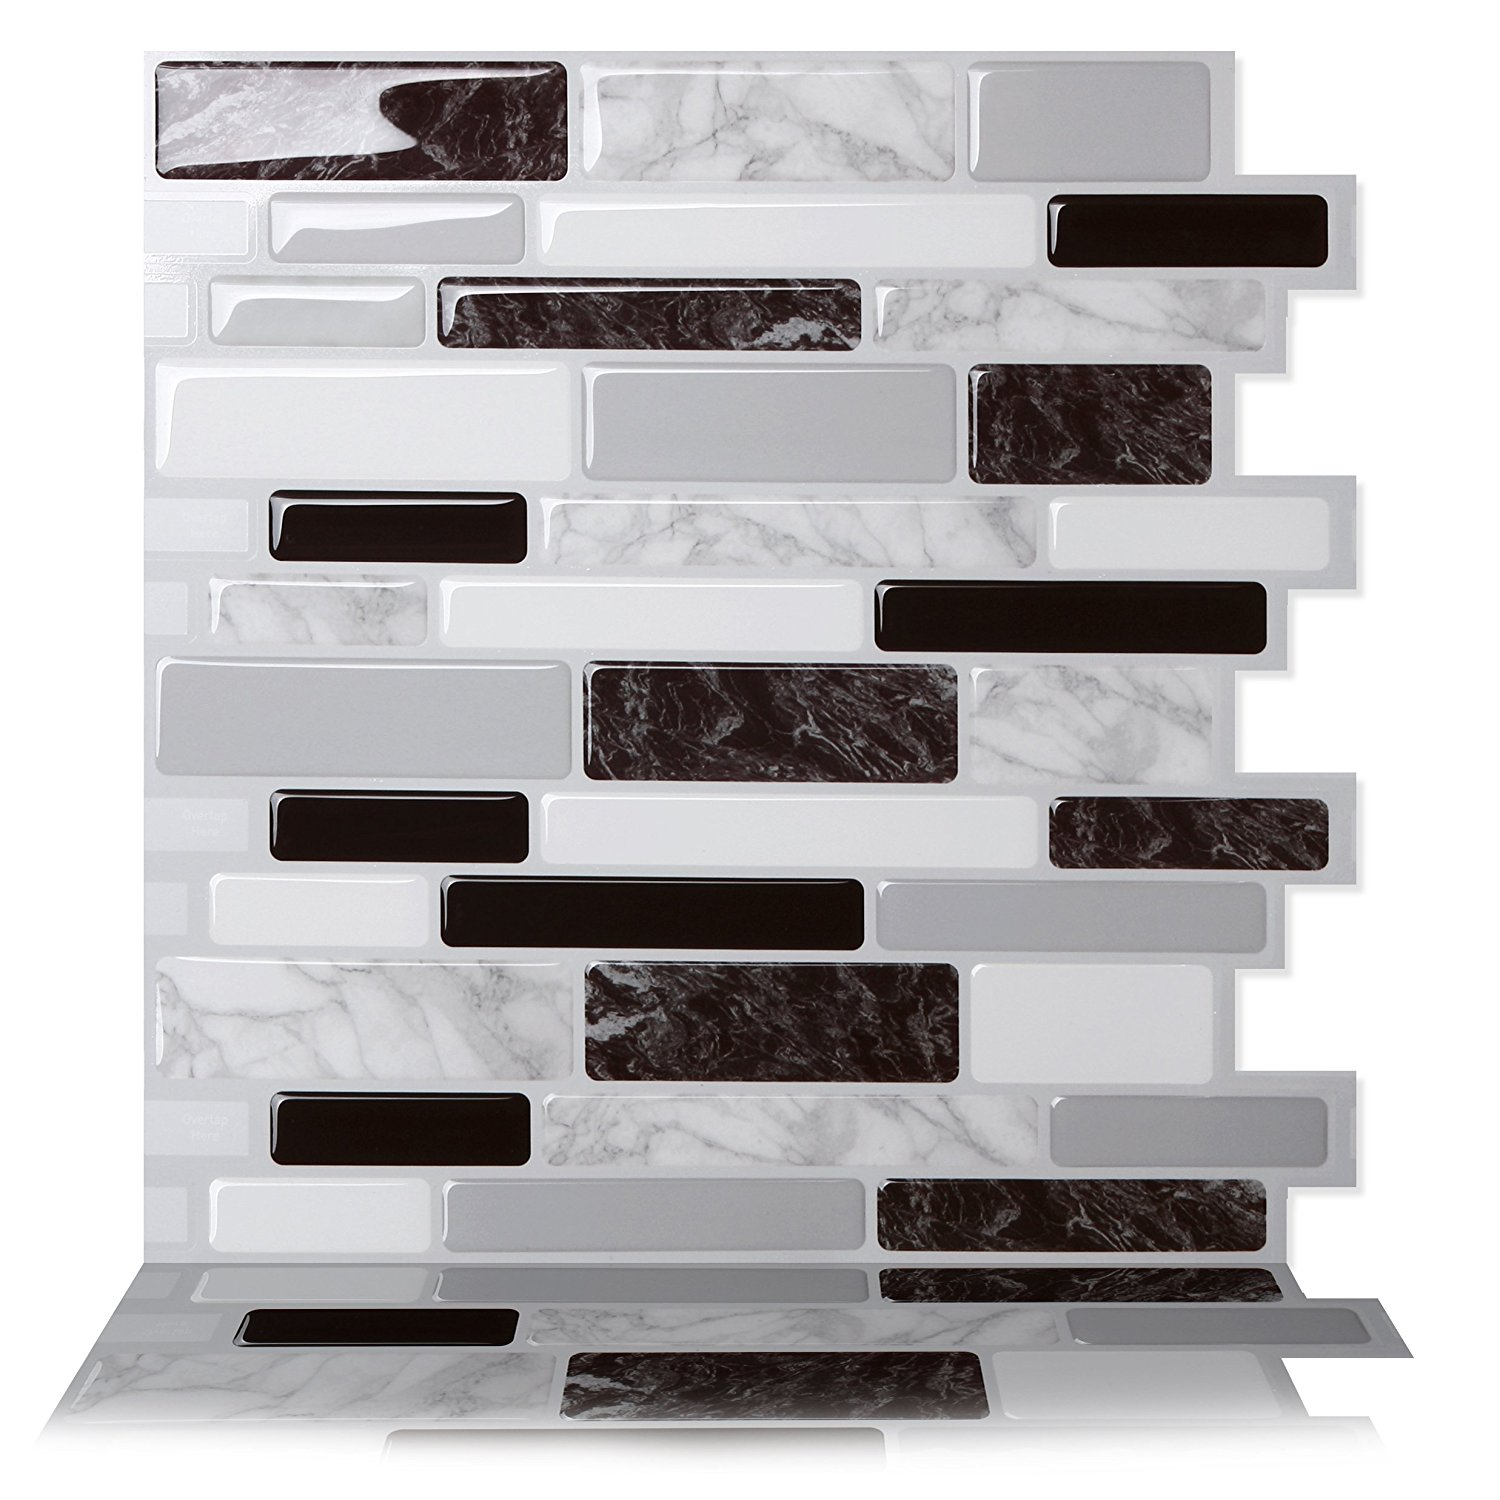 Tic Tac Tiles - Premium Anti Mold Peel and Stick Wall Tile Backsplash in Polito Black and White